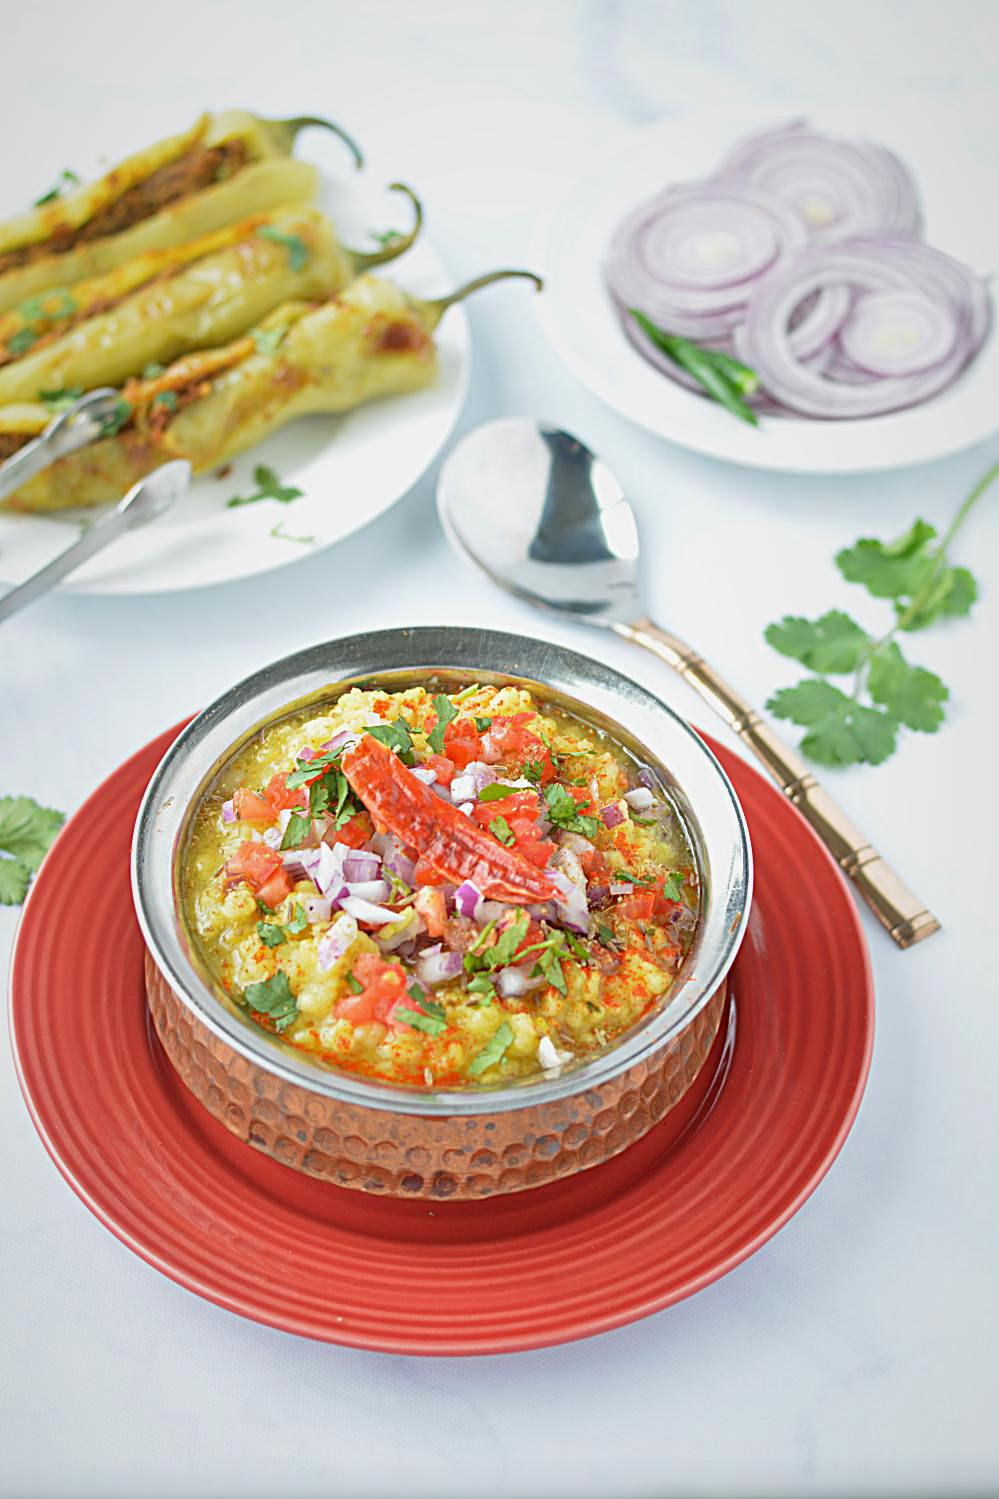 khadi-moong-dal-recipe-6